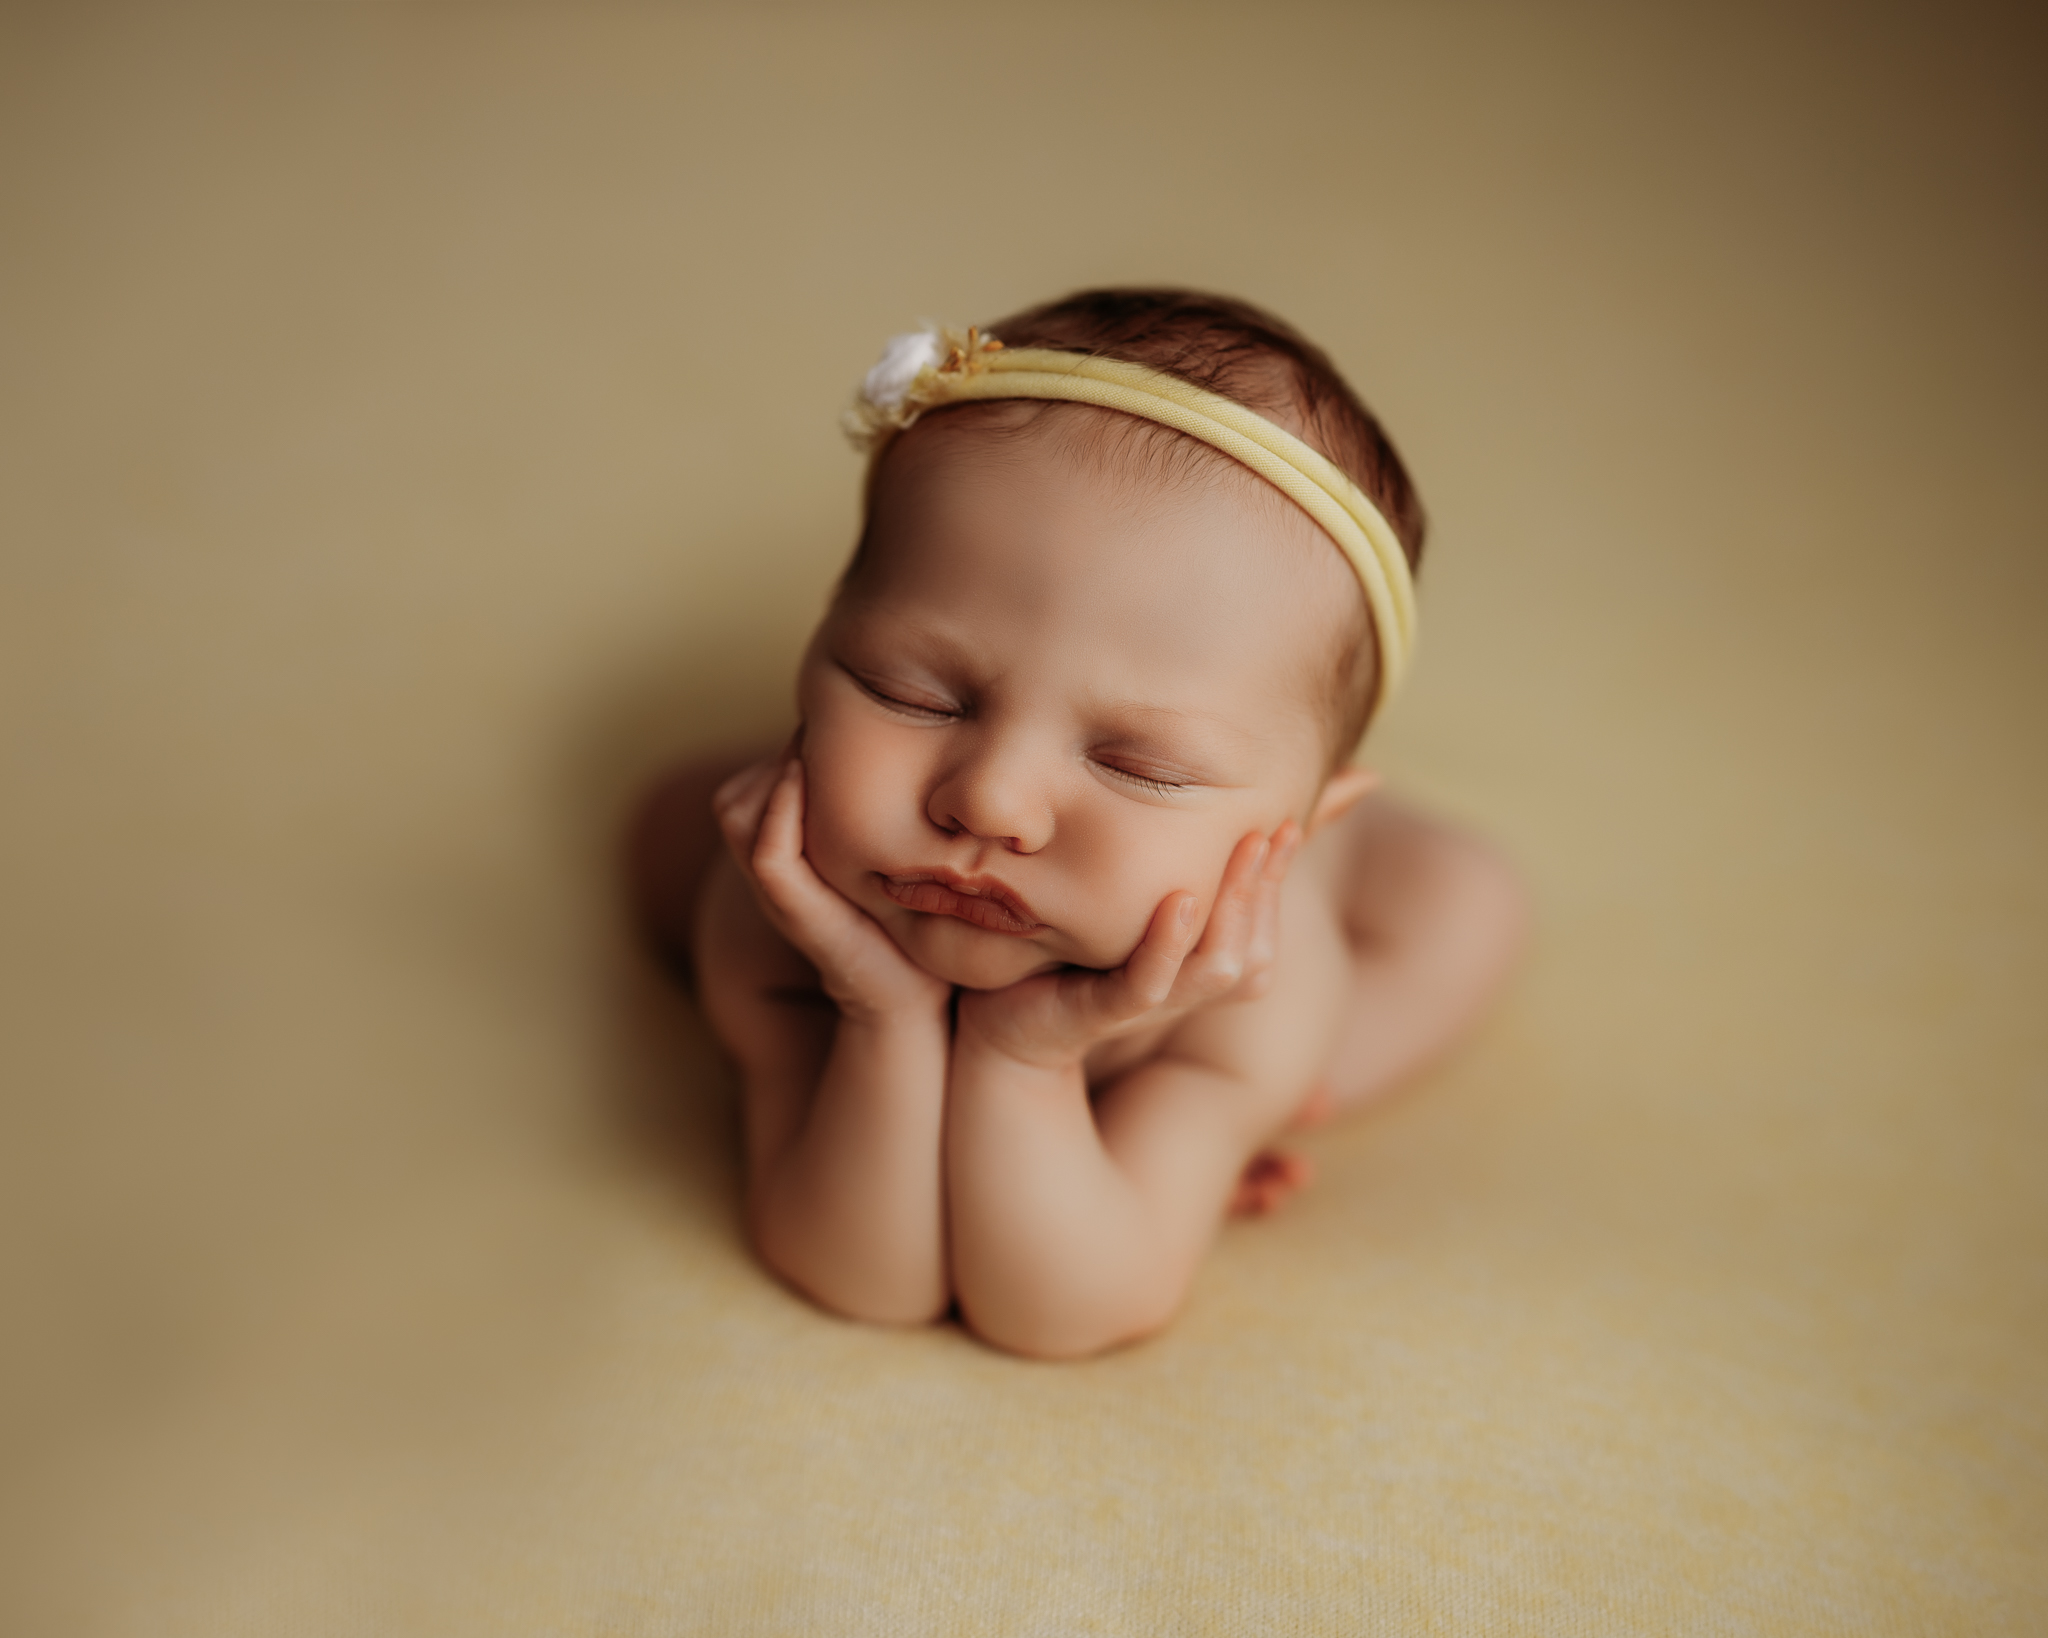 newborn in frog pose on yellow backdrop